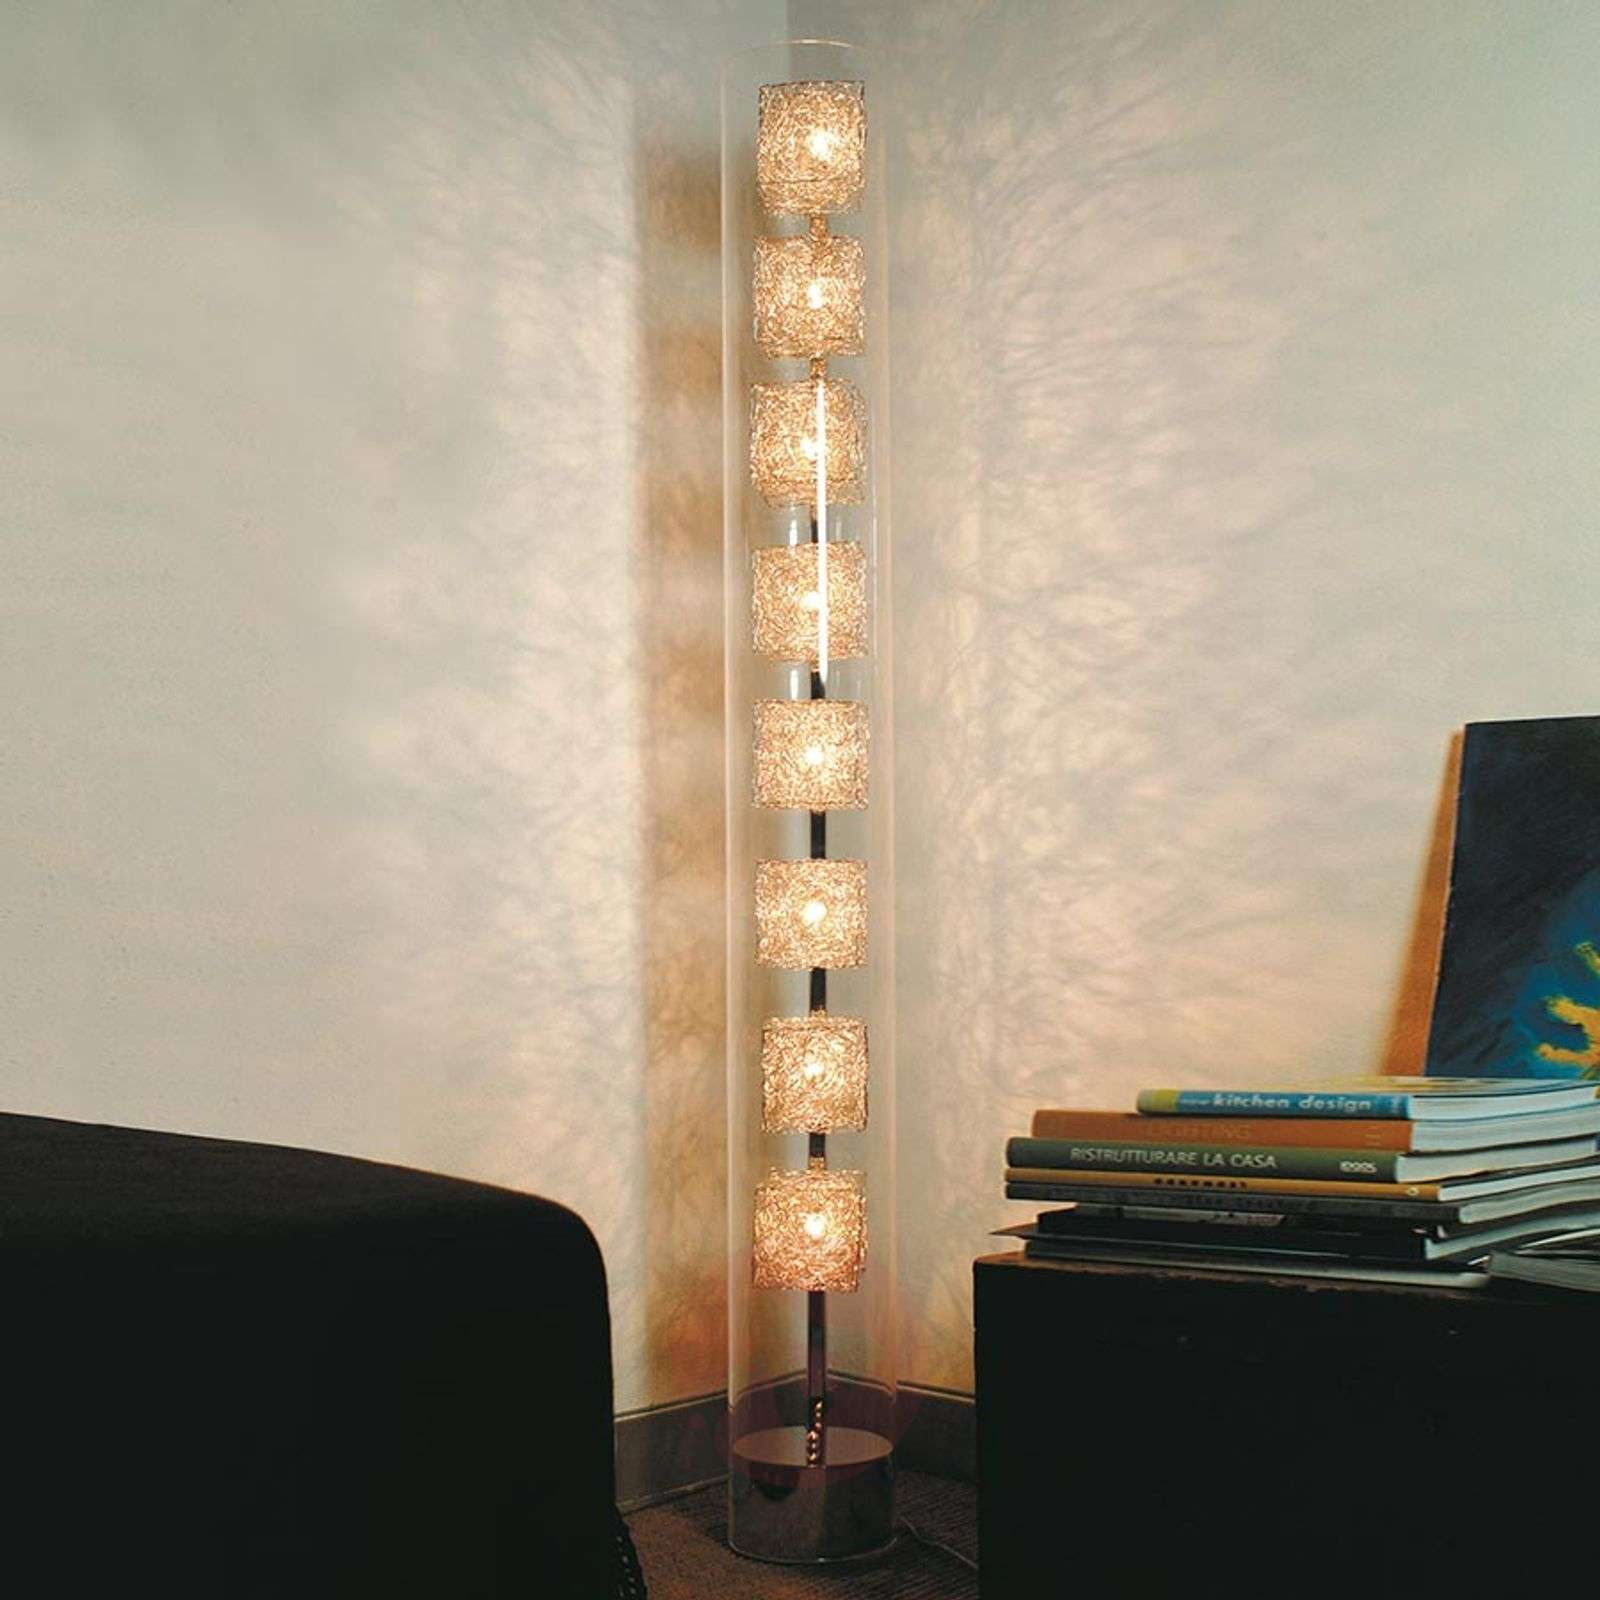 Knikerboker Kubini tube-shaped floor lamp-5538045-01